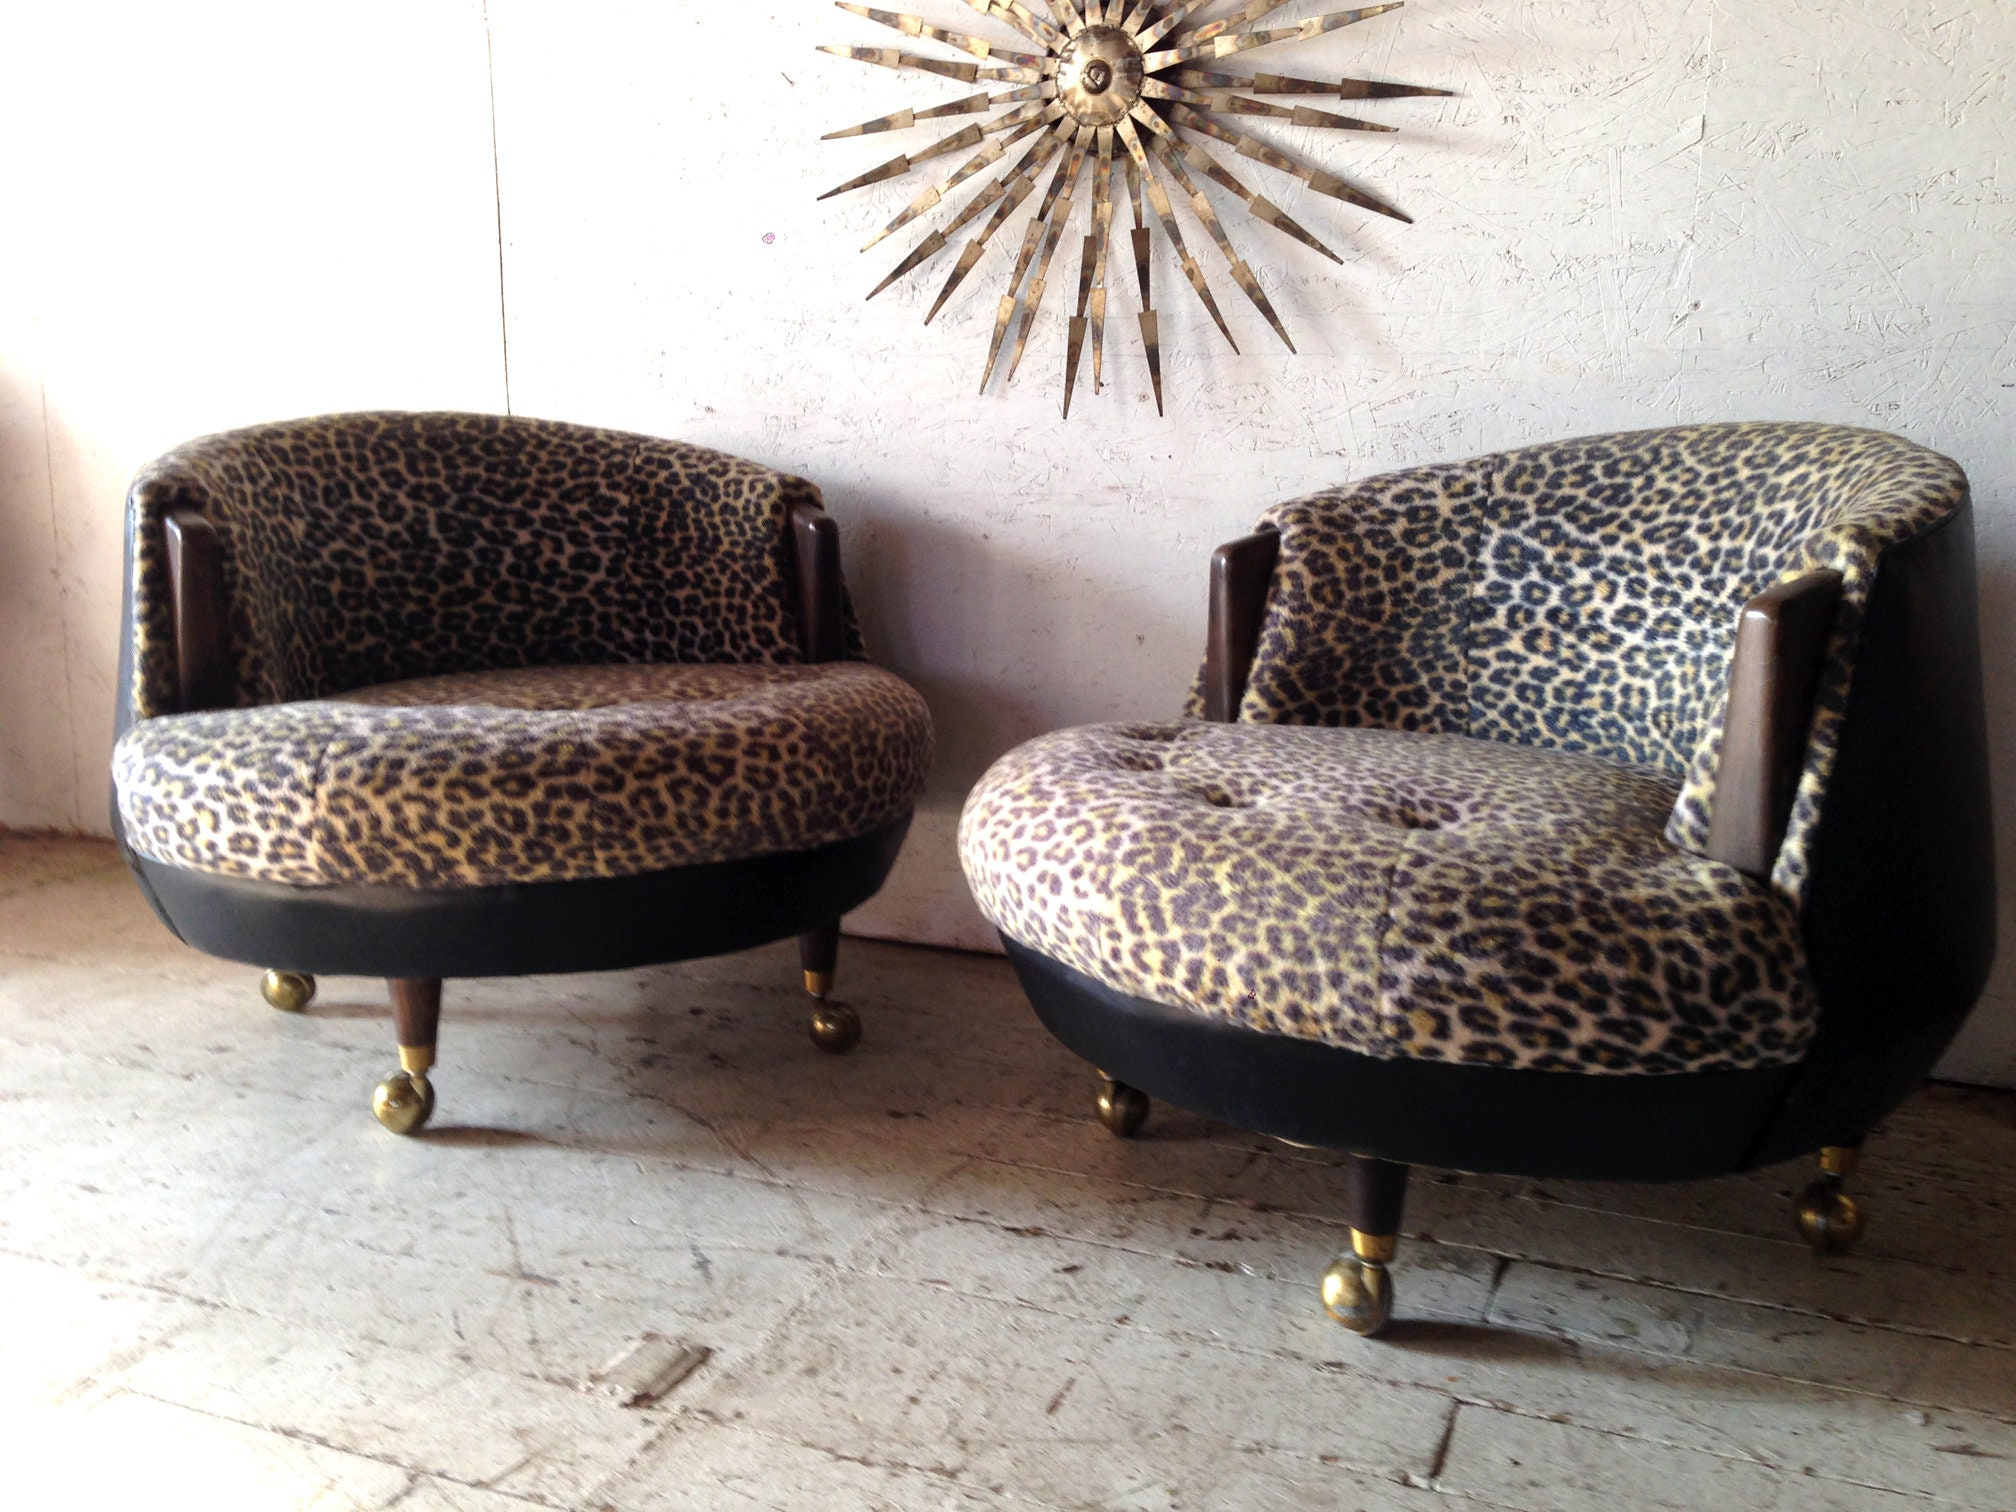 SALE Pair Mid Century Modern Round Lounge Chairs Faux leopard upholstery  9s attrib to Adrian Pearsall Craft Associates era